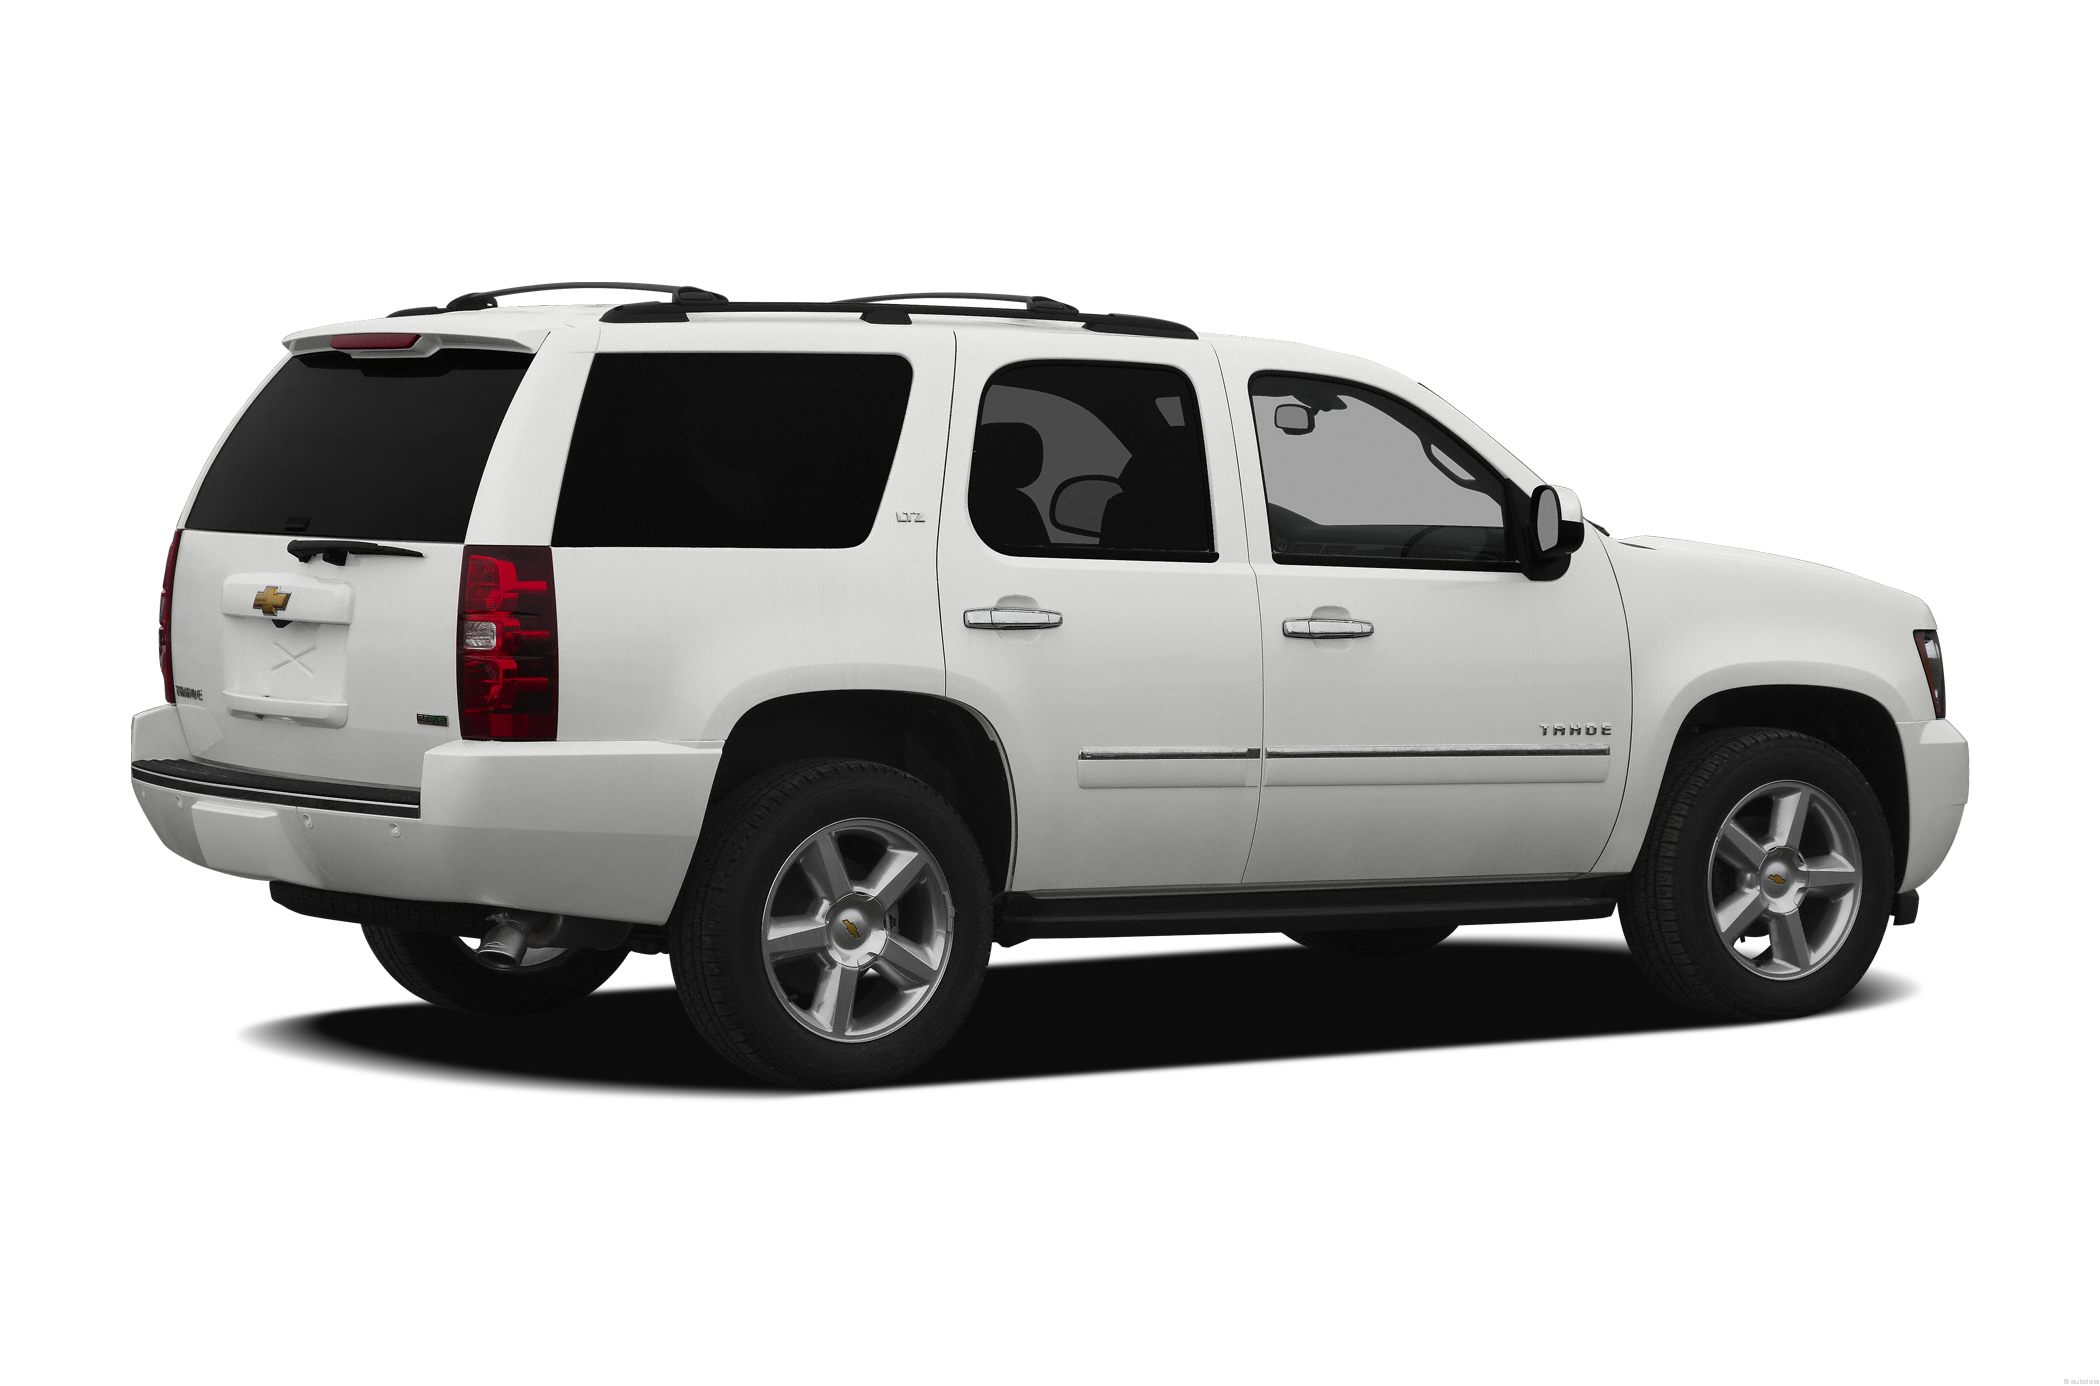 specs tahoe reviews autotrader options ca photos price chevrolet research trims